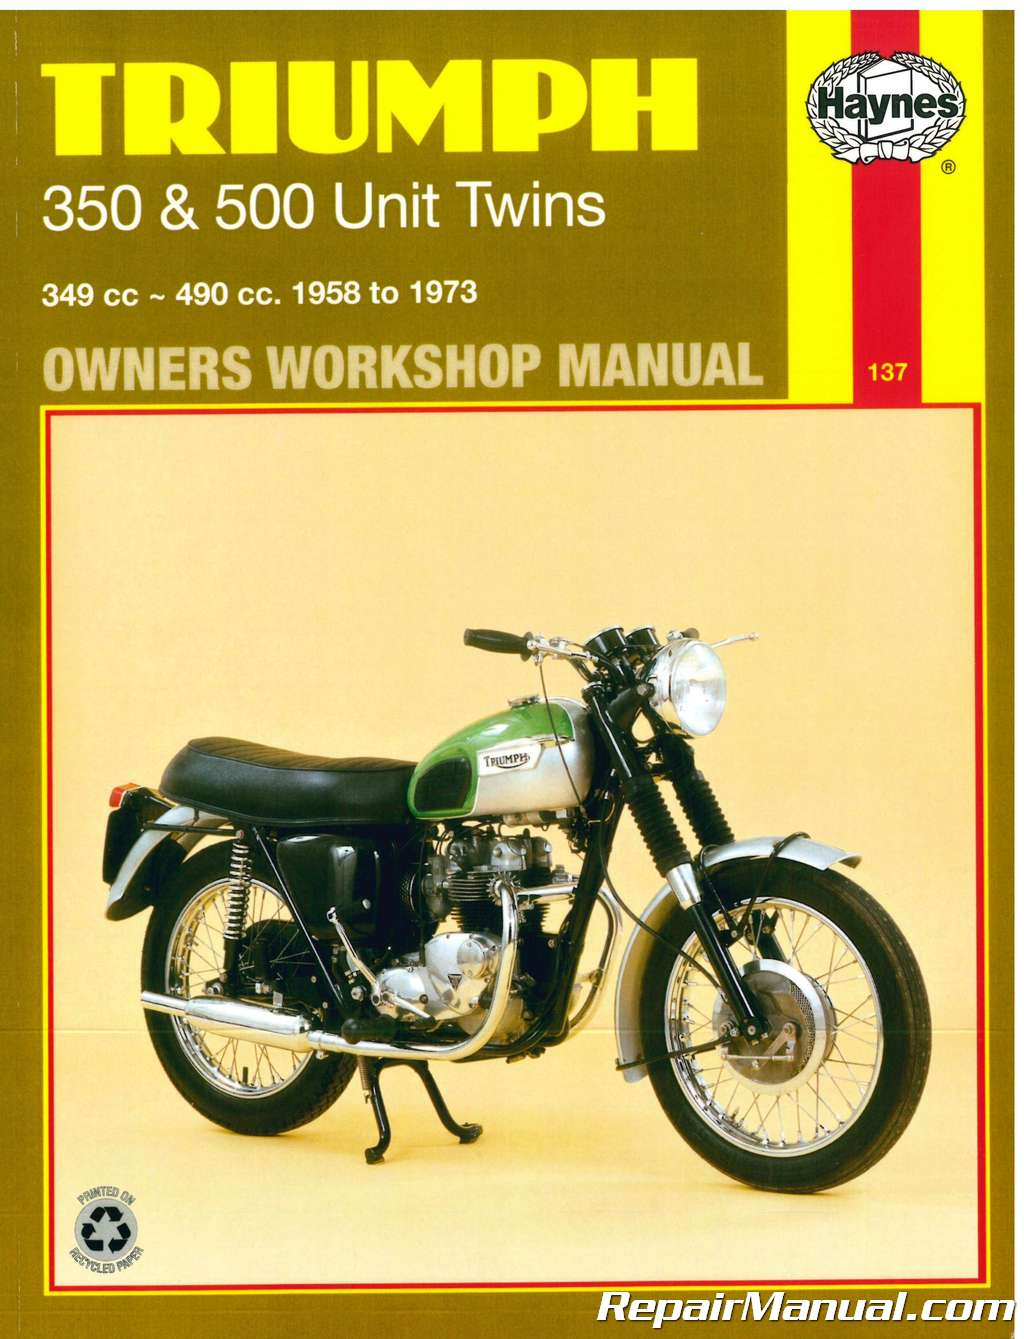 Haynes Triumph 350 500 Unit Twins 1957-1973 Motorcycle Owners Workshop  Manual